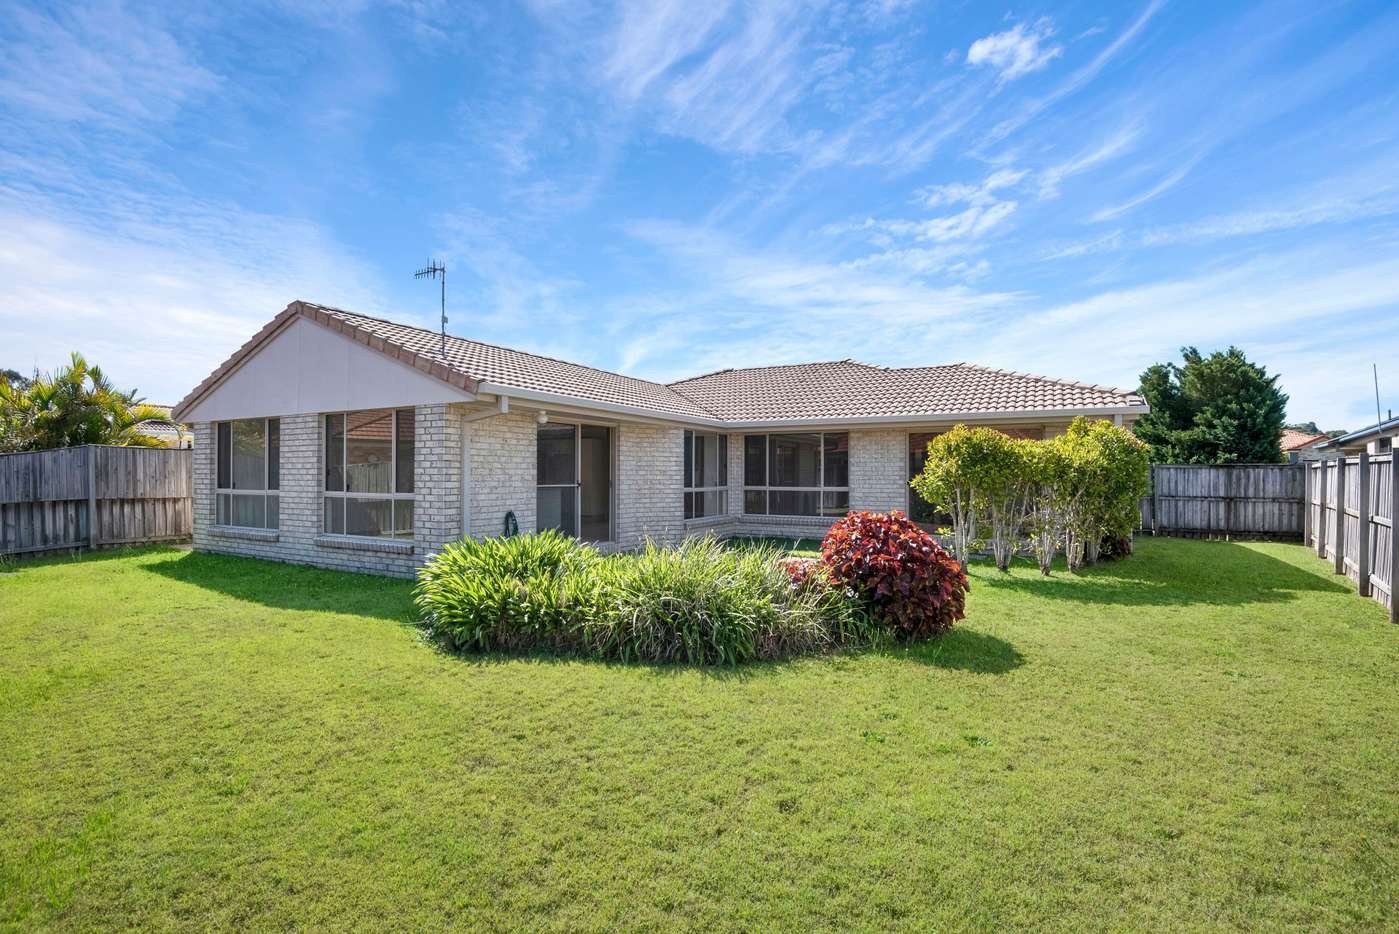 Main view of Homely house listing, 11 Botanical Circuit, Banora Point, NSW 2486